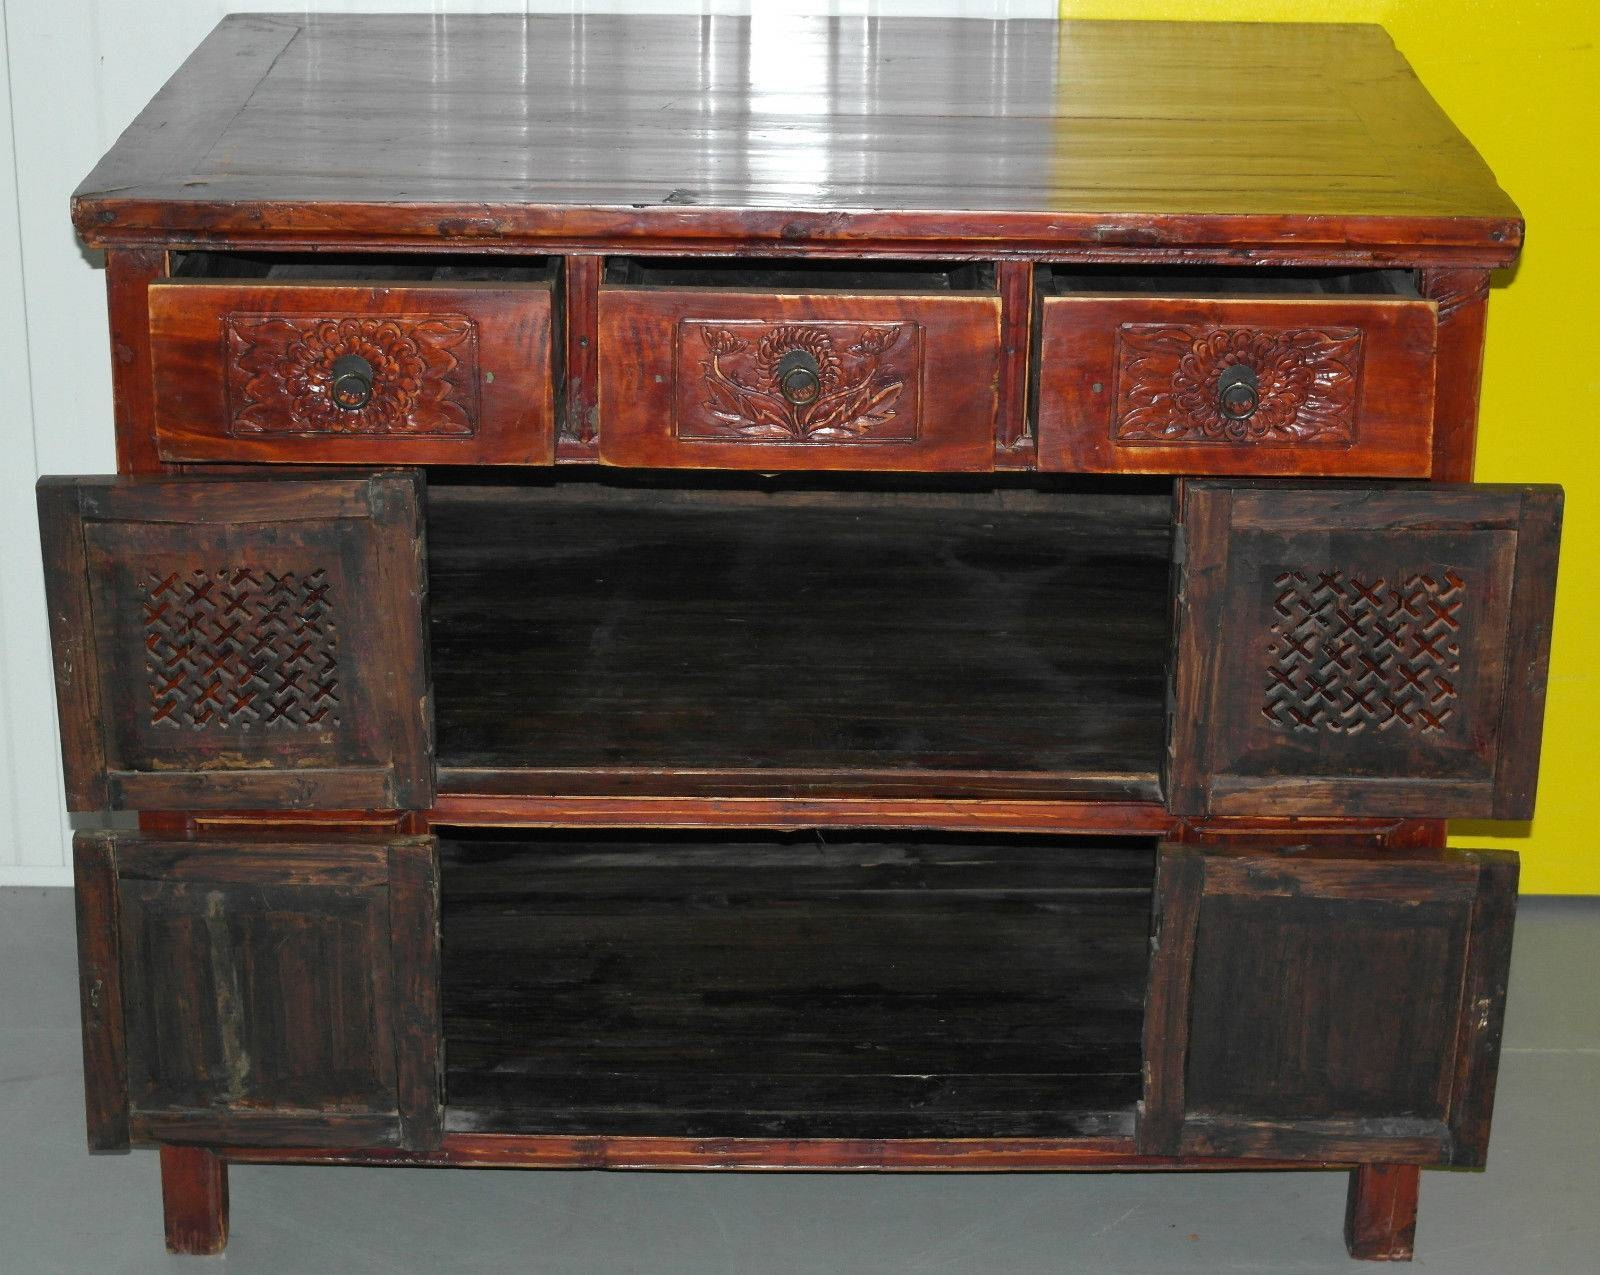 Chinese Redwood Antique Style Very Deep Sideboard Drawers Intended For Chinese Sideboards (View 12 of 30)